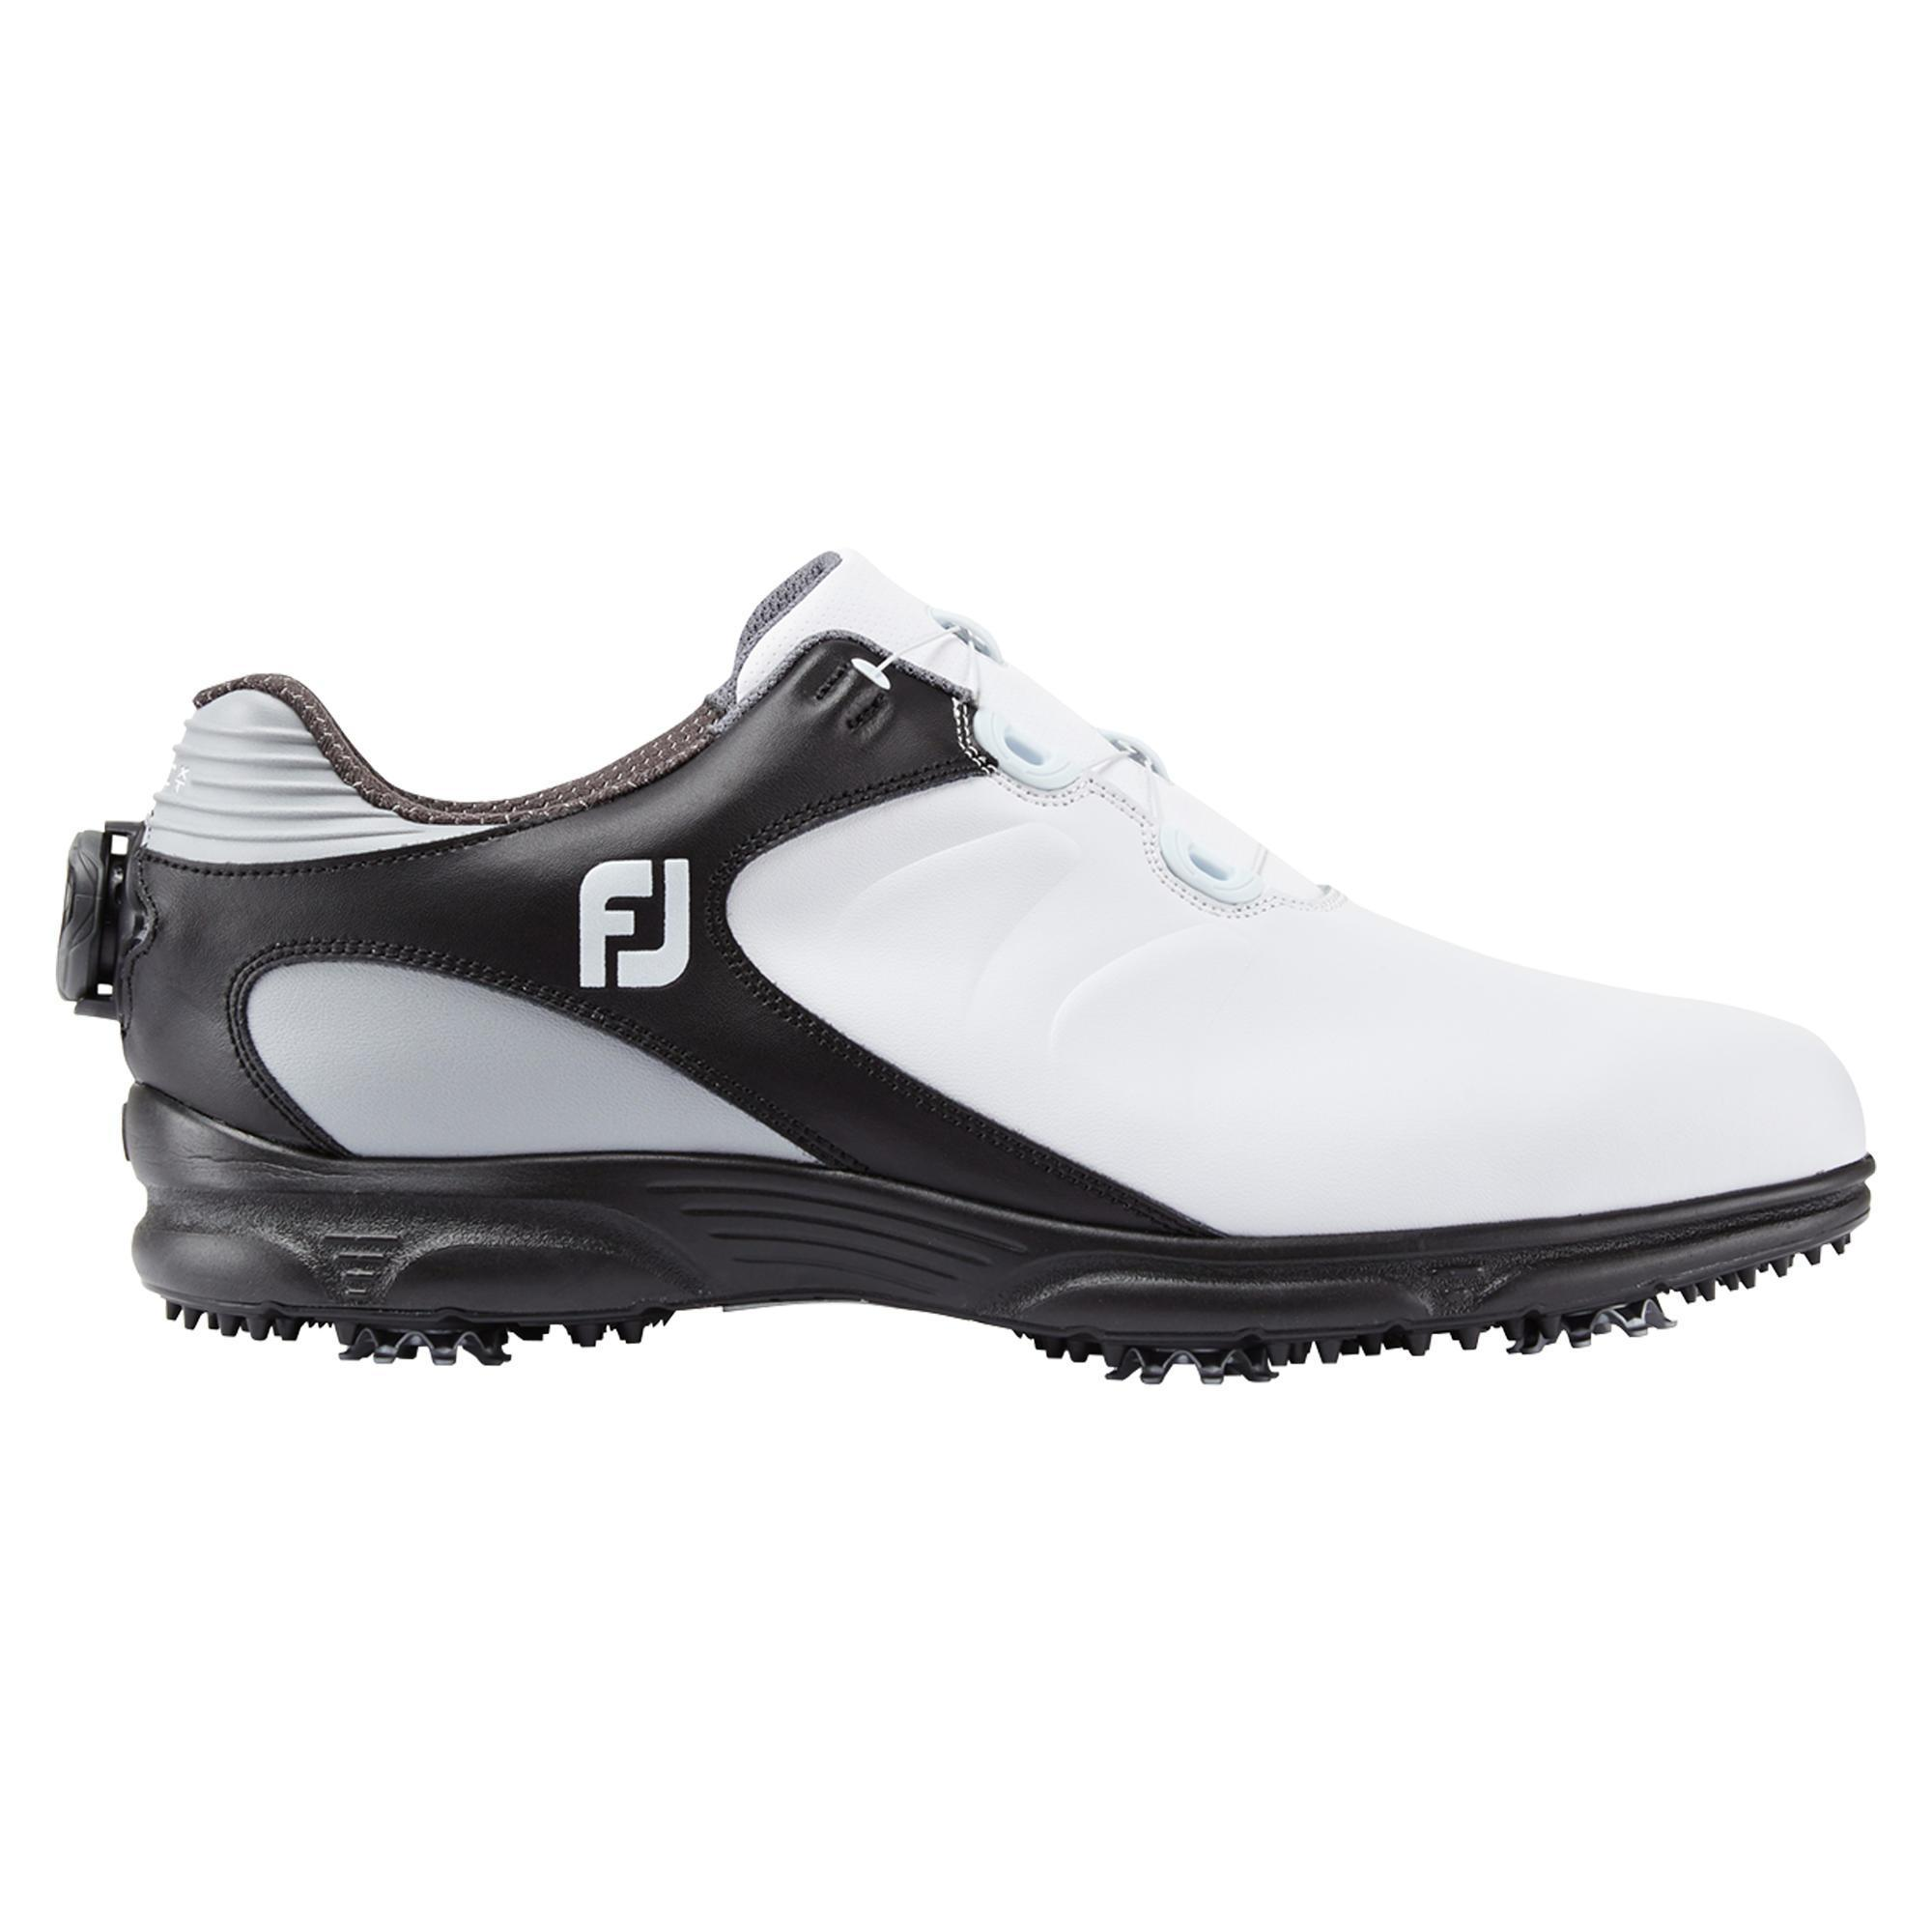 pretty nice 58b45 d803b Comprar zapatos y zapatillas de golf online  Decathlon